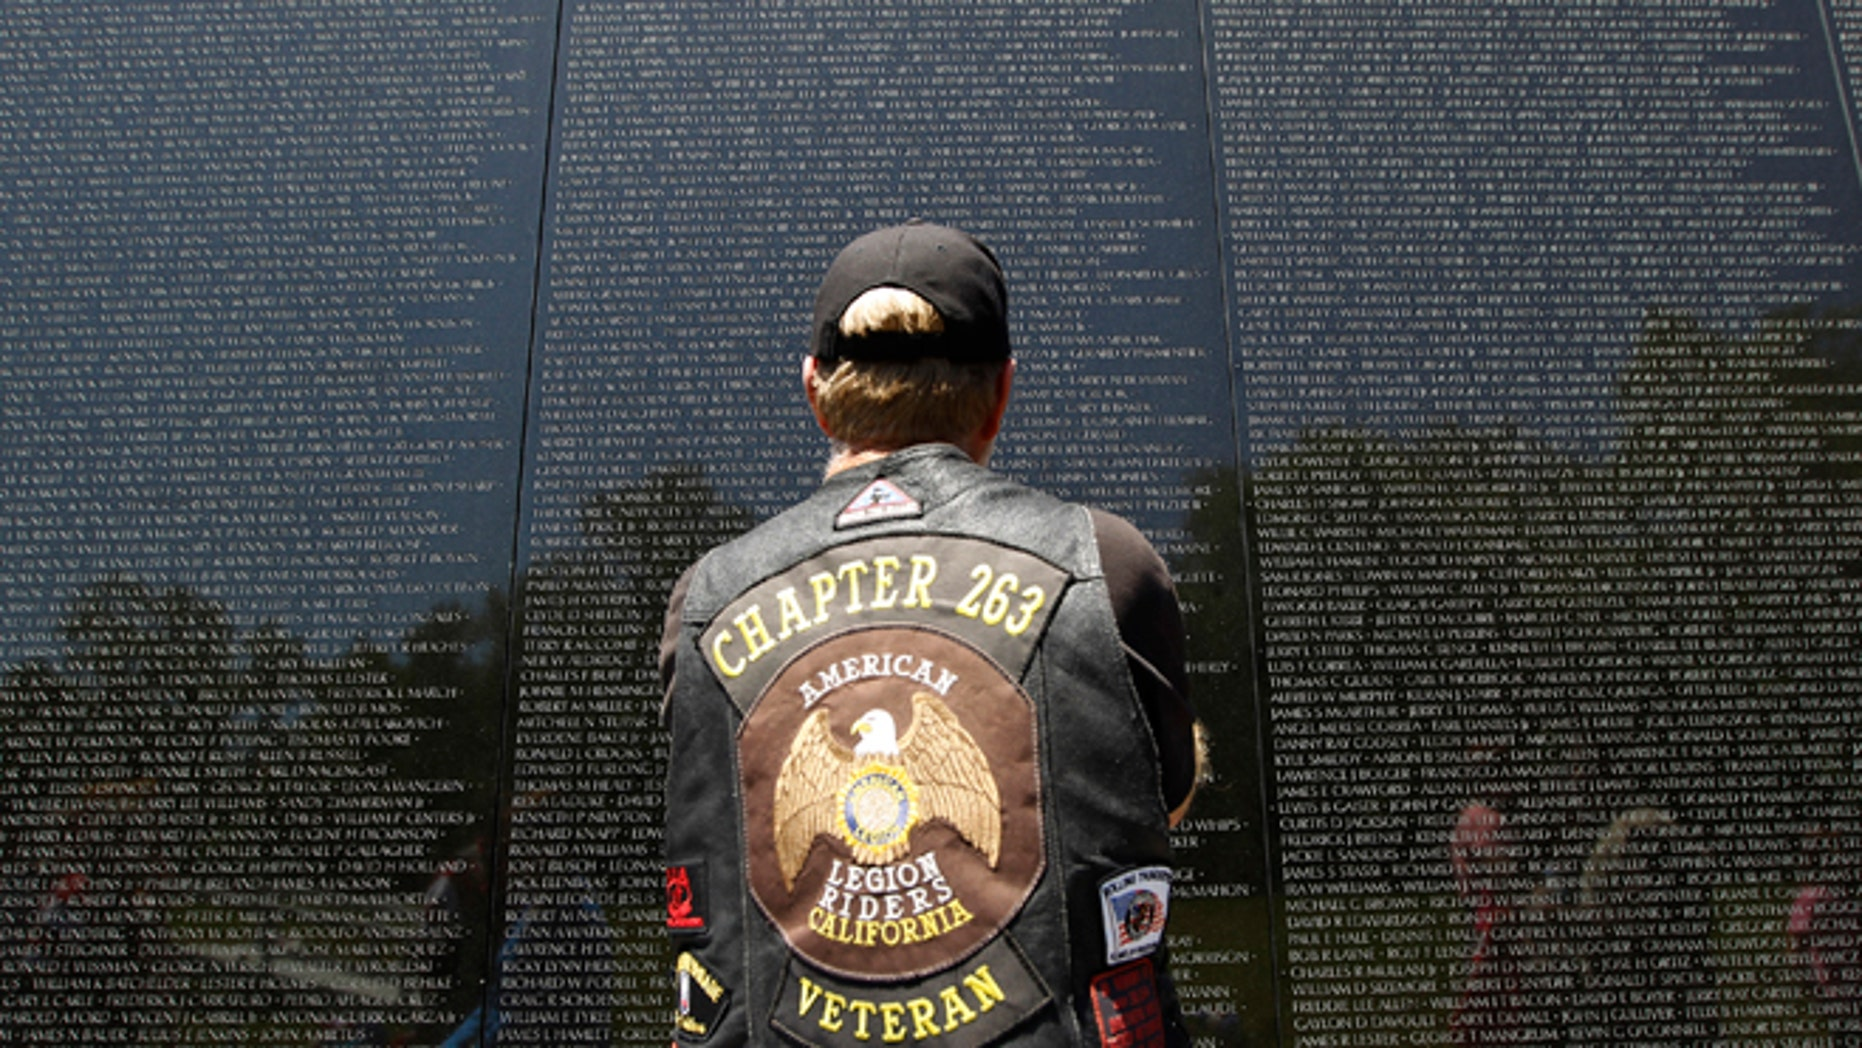 May 26, 2013: A veteran looks at the names of those who died etched into the wall of the Vietnam Veterans Memorial, ahead of Memorial Day in Washington, Sunday.